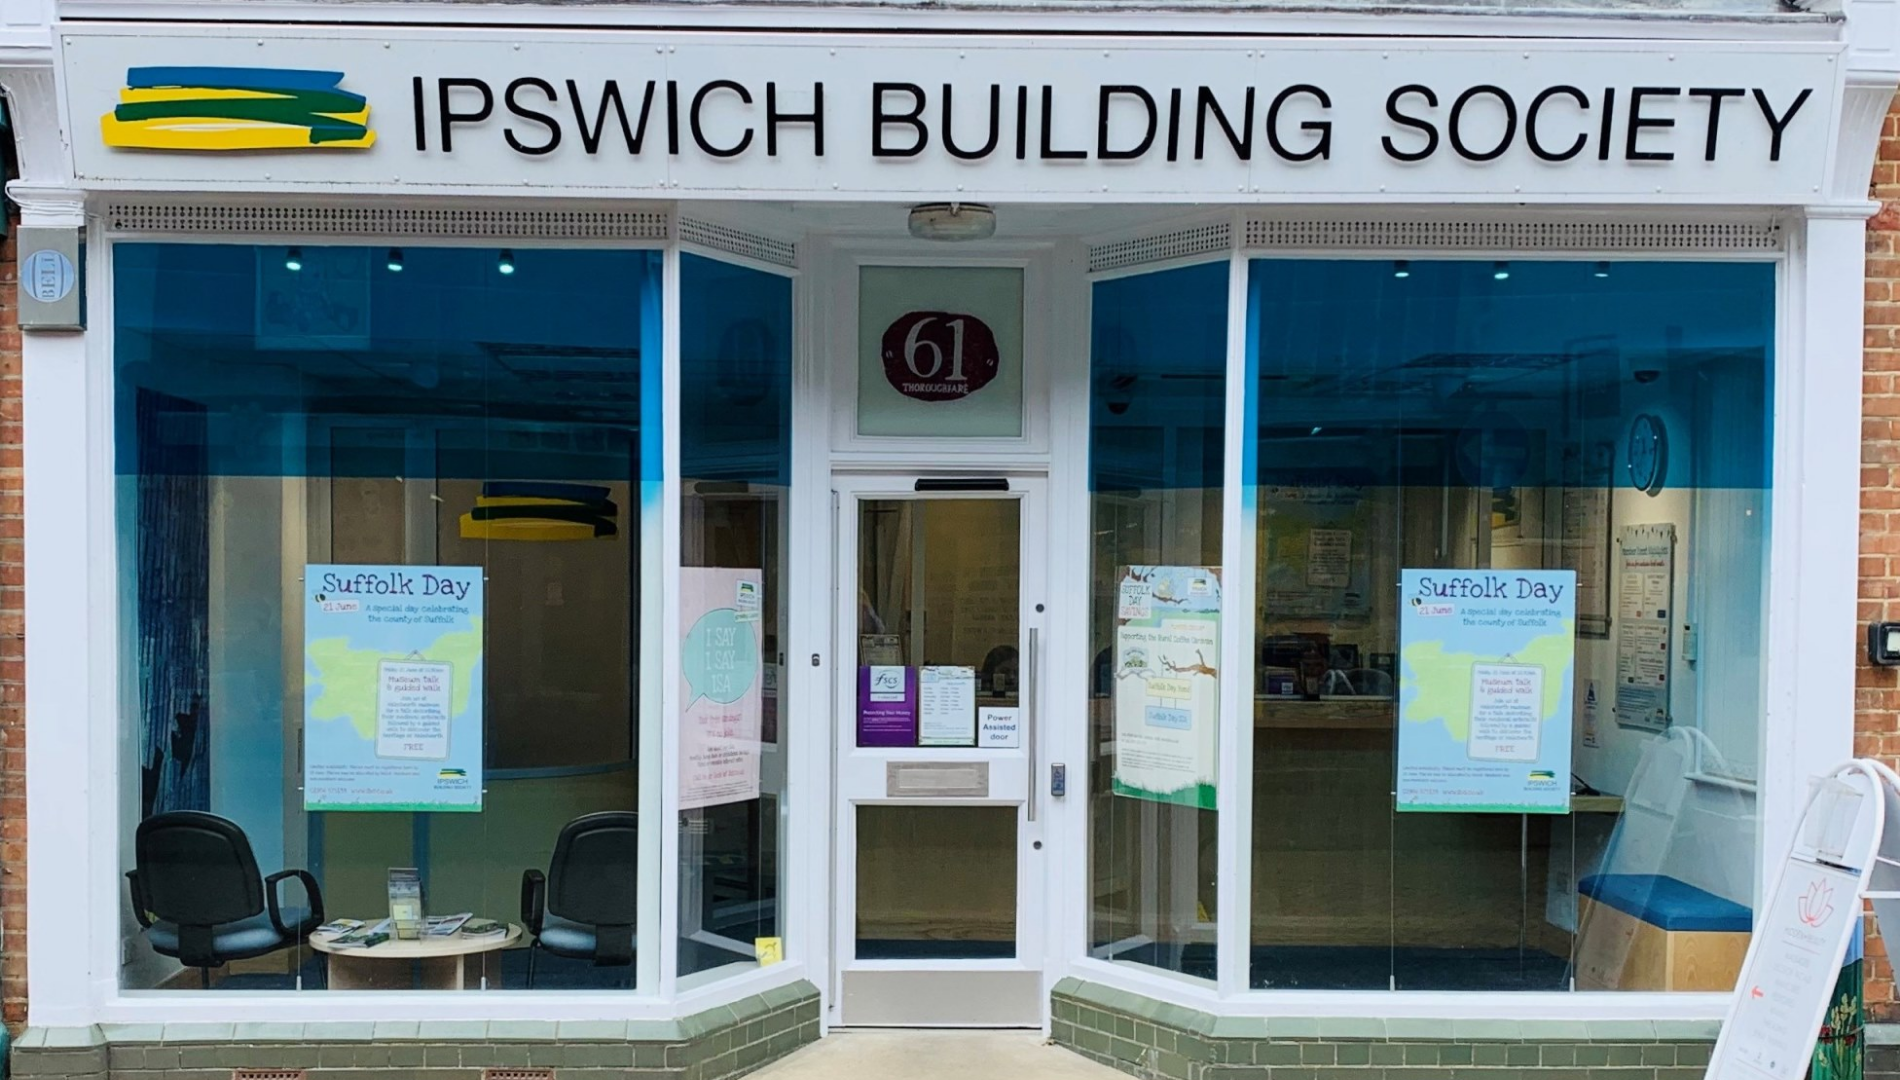 Ipswich Building Society's story: How we made significant energy savings through Environmental Management